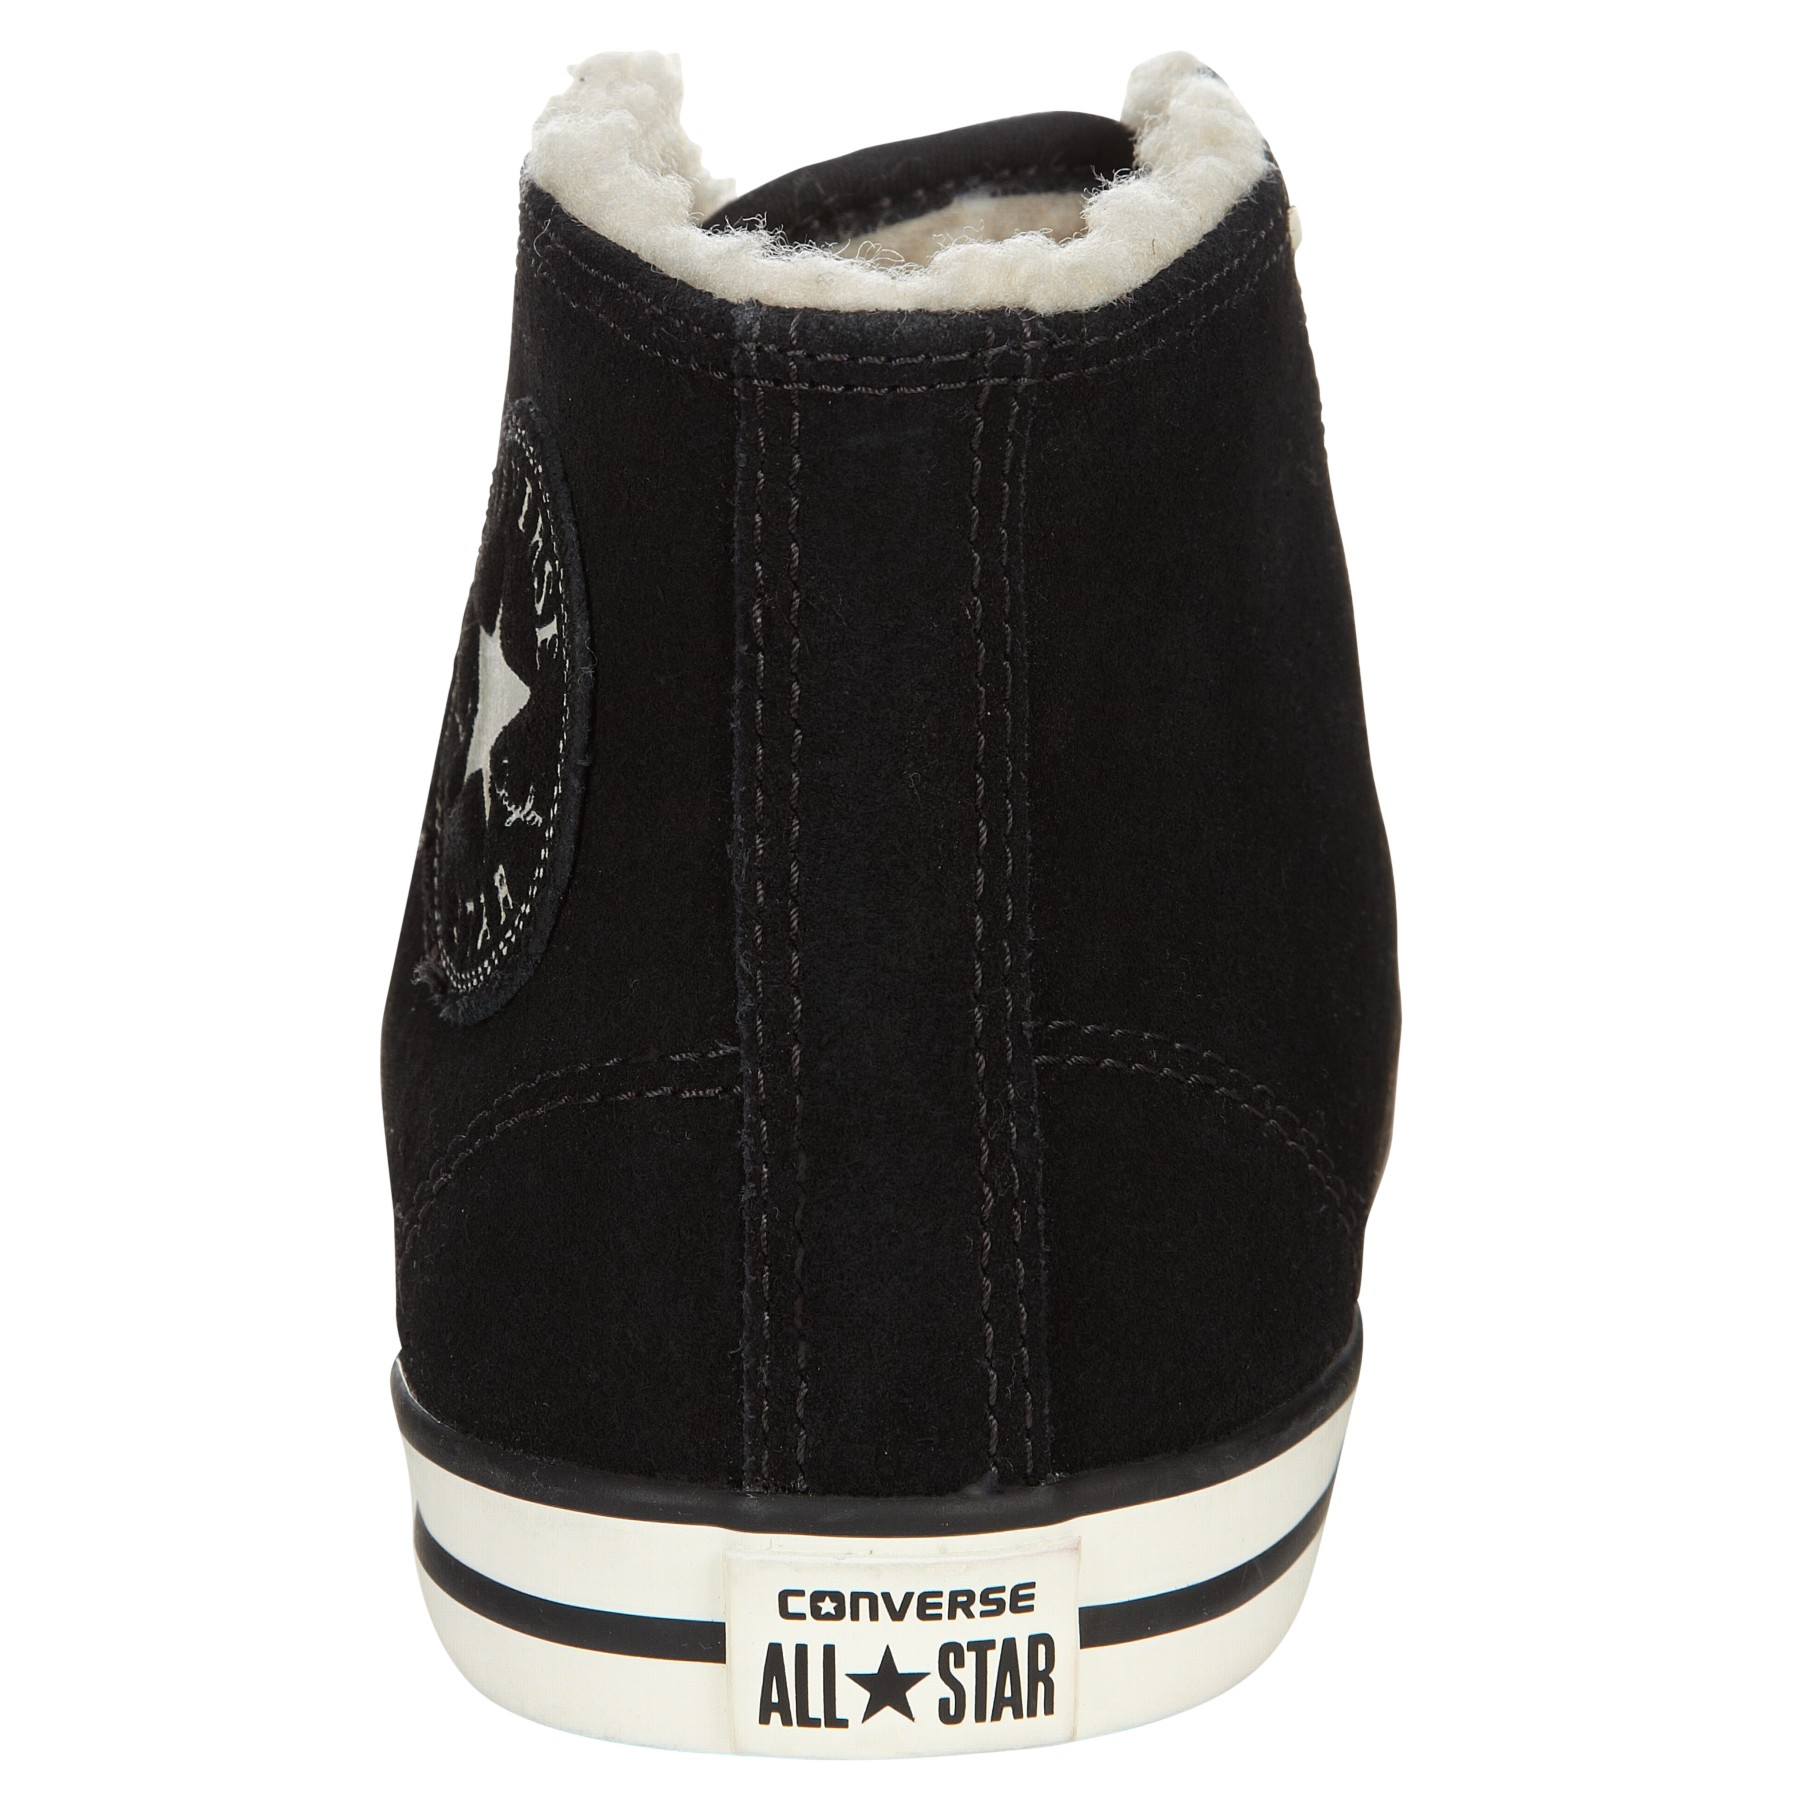 55c30bcda246 Converse Chuck Taylor All Stars Dainty Midtop Fur Lined Suede ...